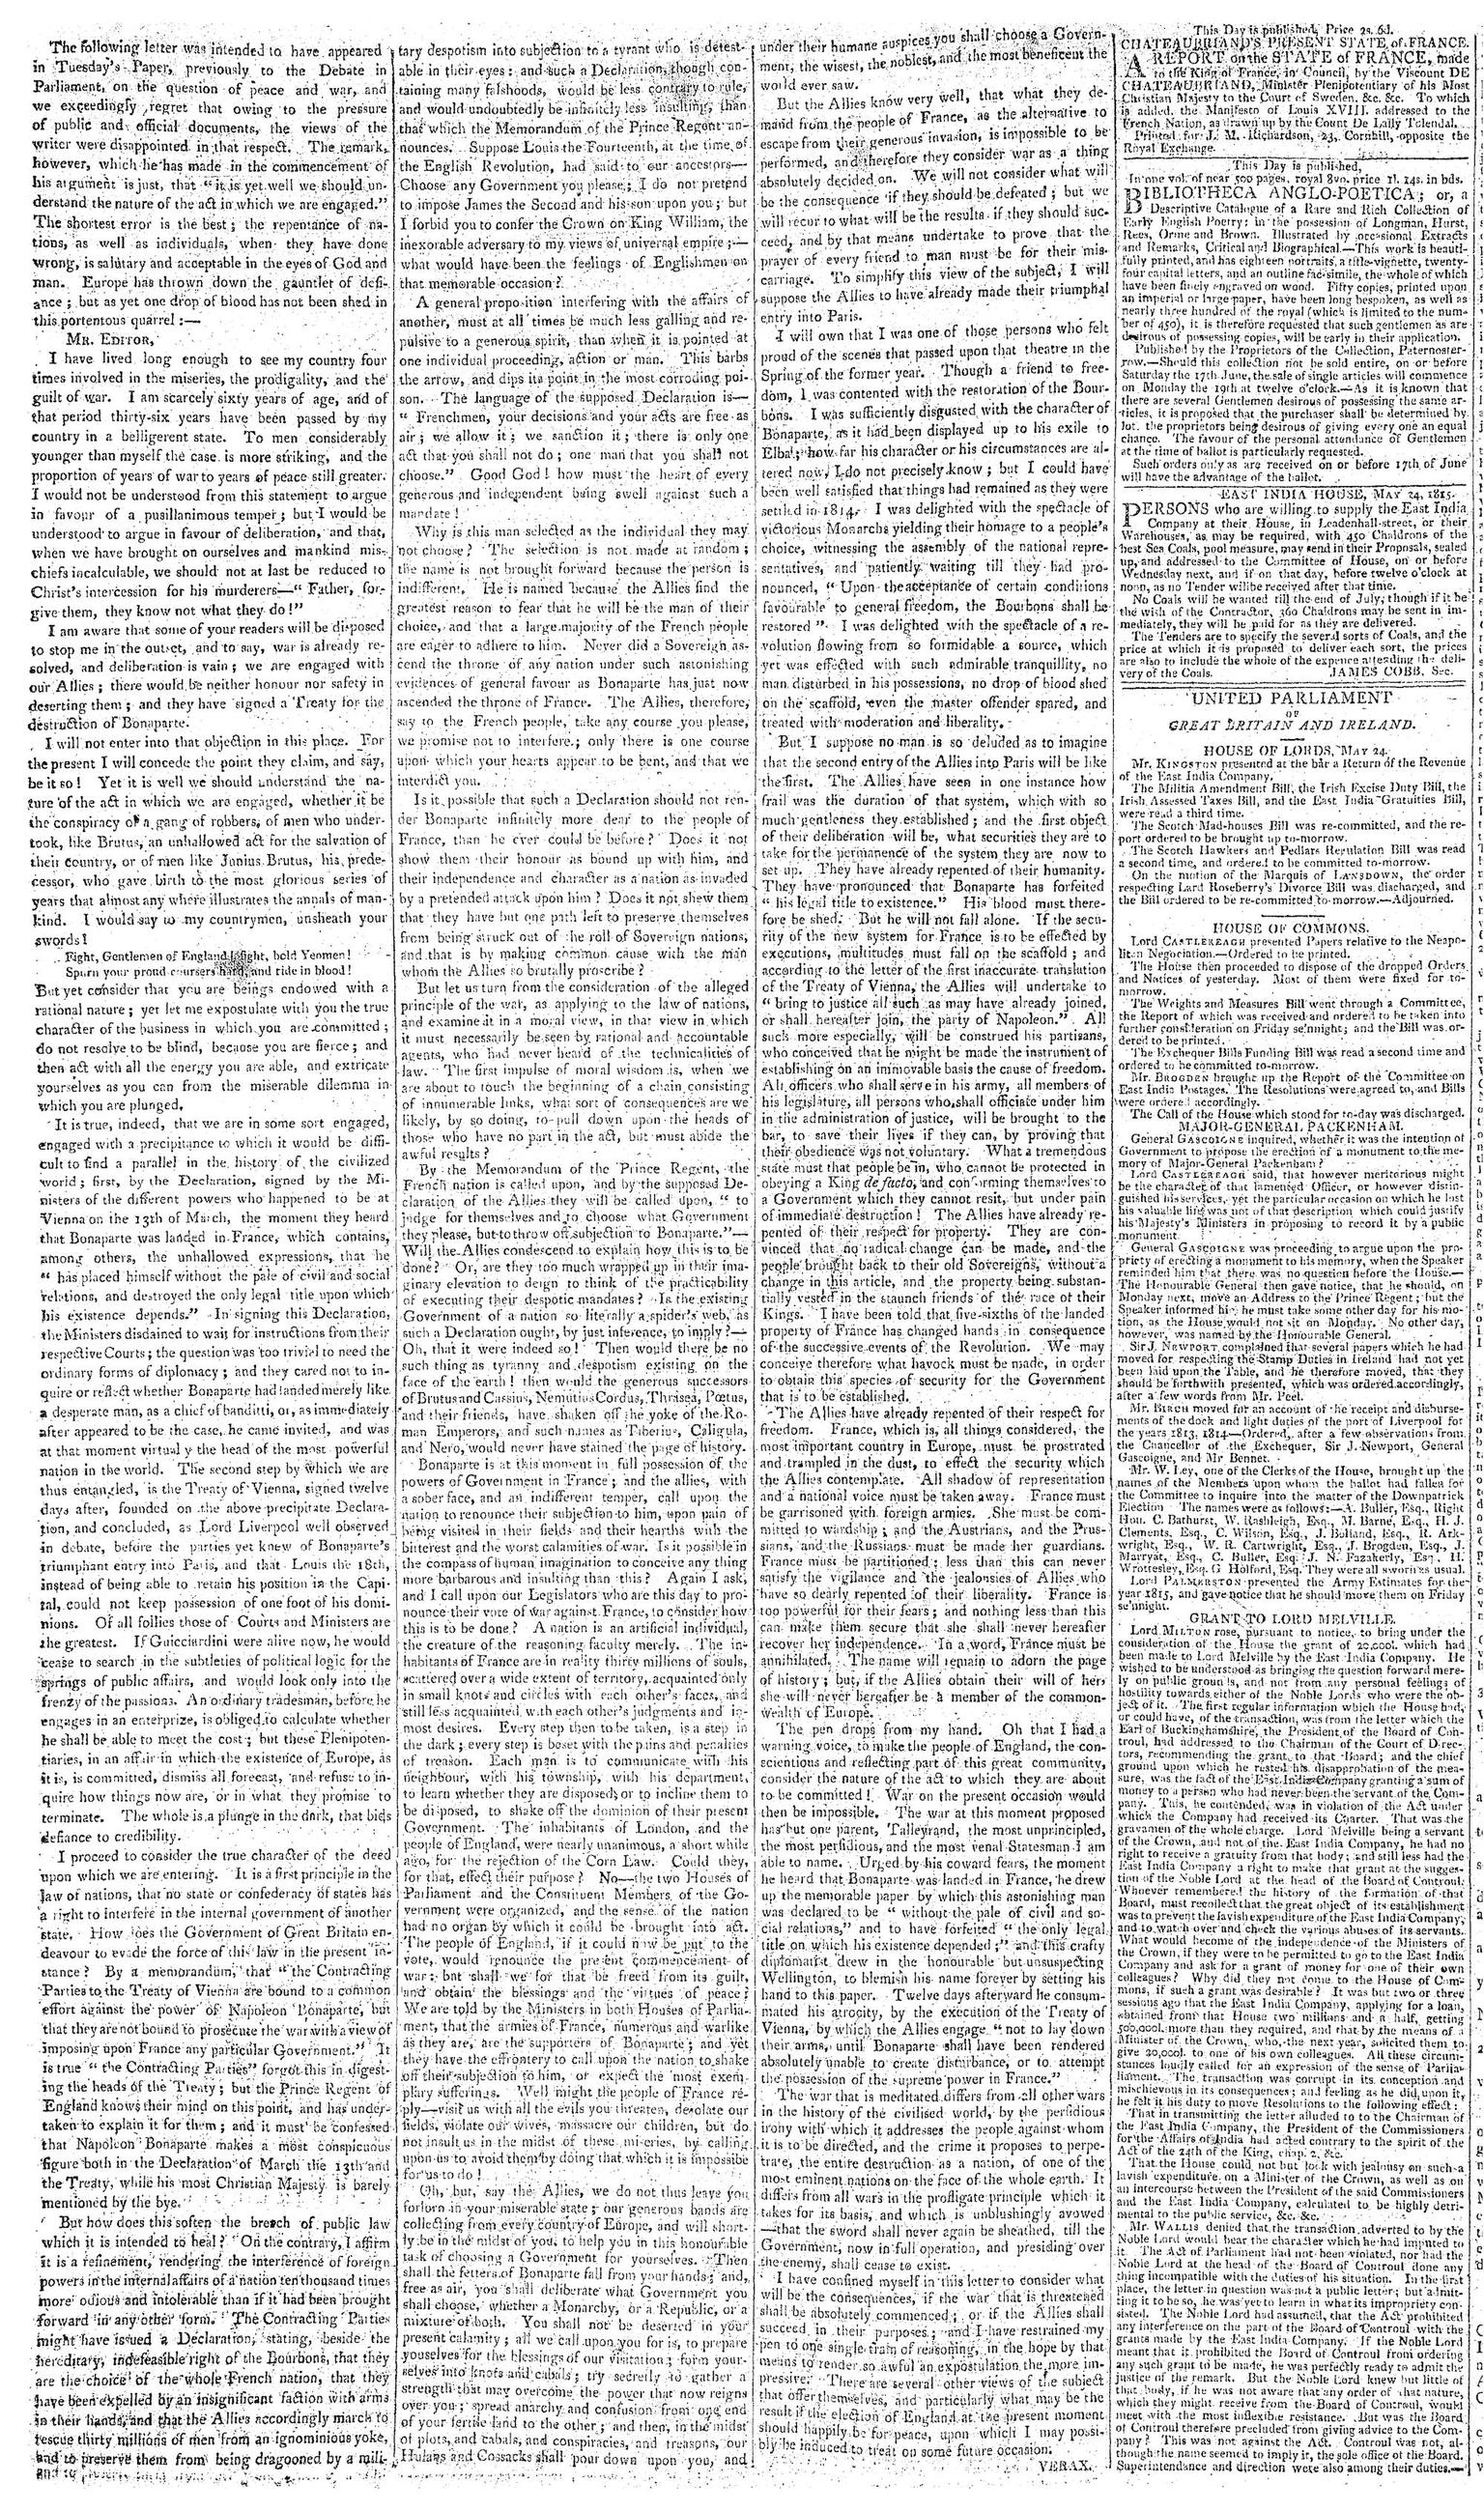 Letters of Verax Morning Chronicle Thursday, May 25, 1815 RESIZED.jpeg